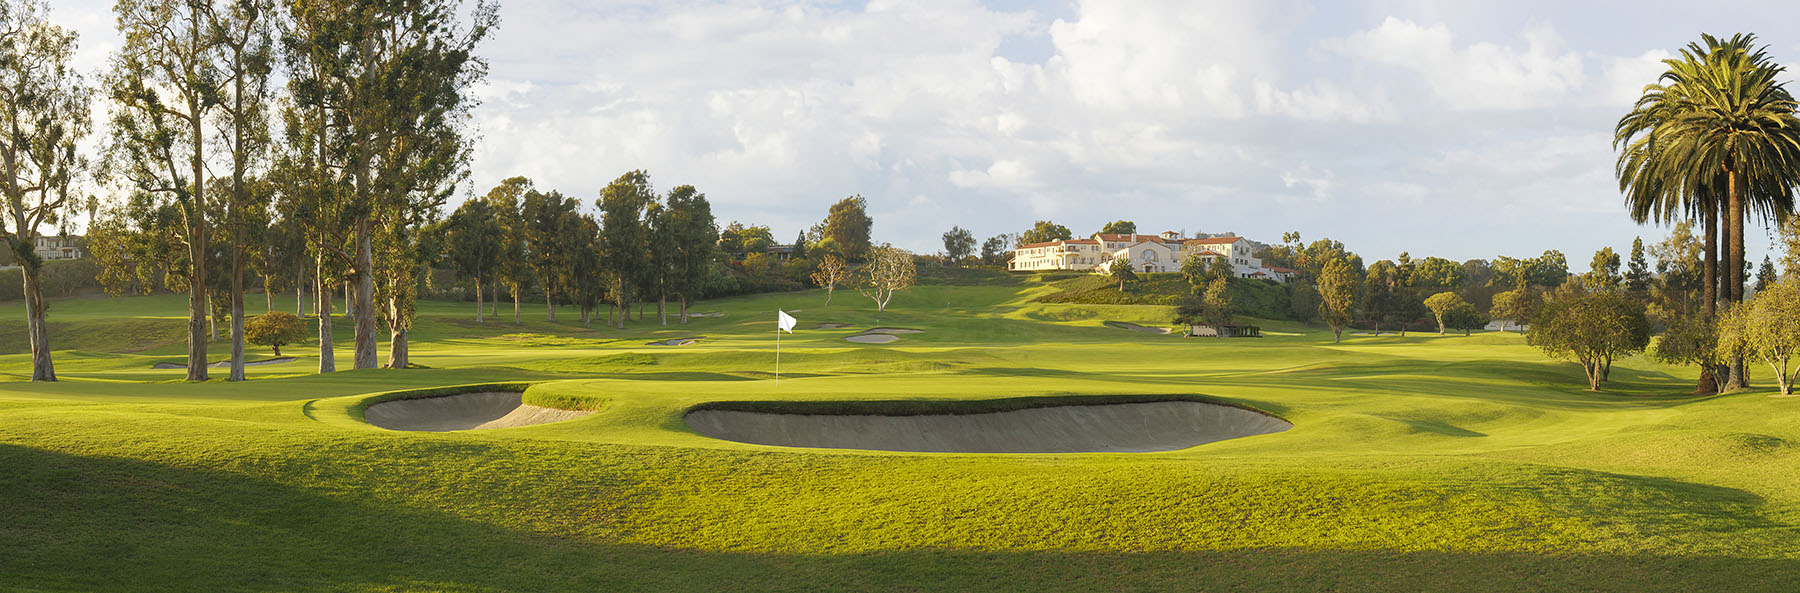 Golf Course Image - Riviera Country Club No. 10